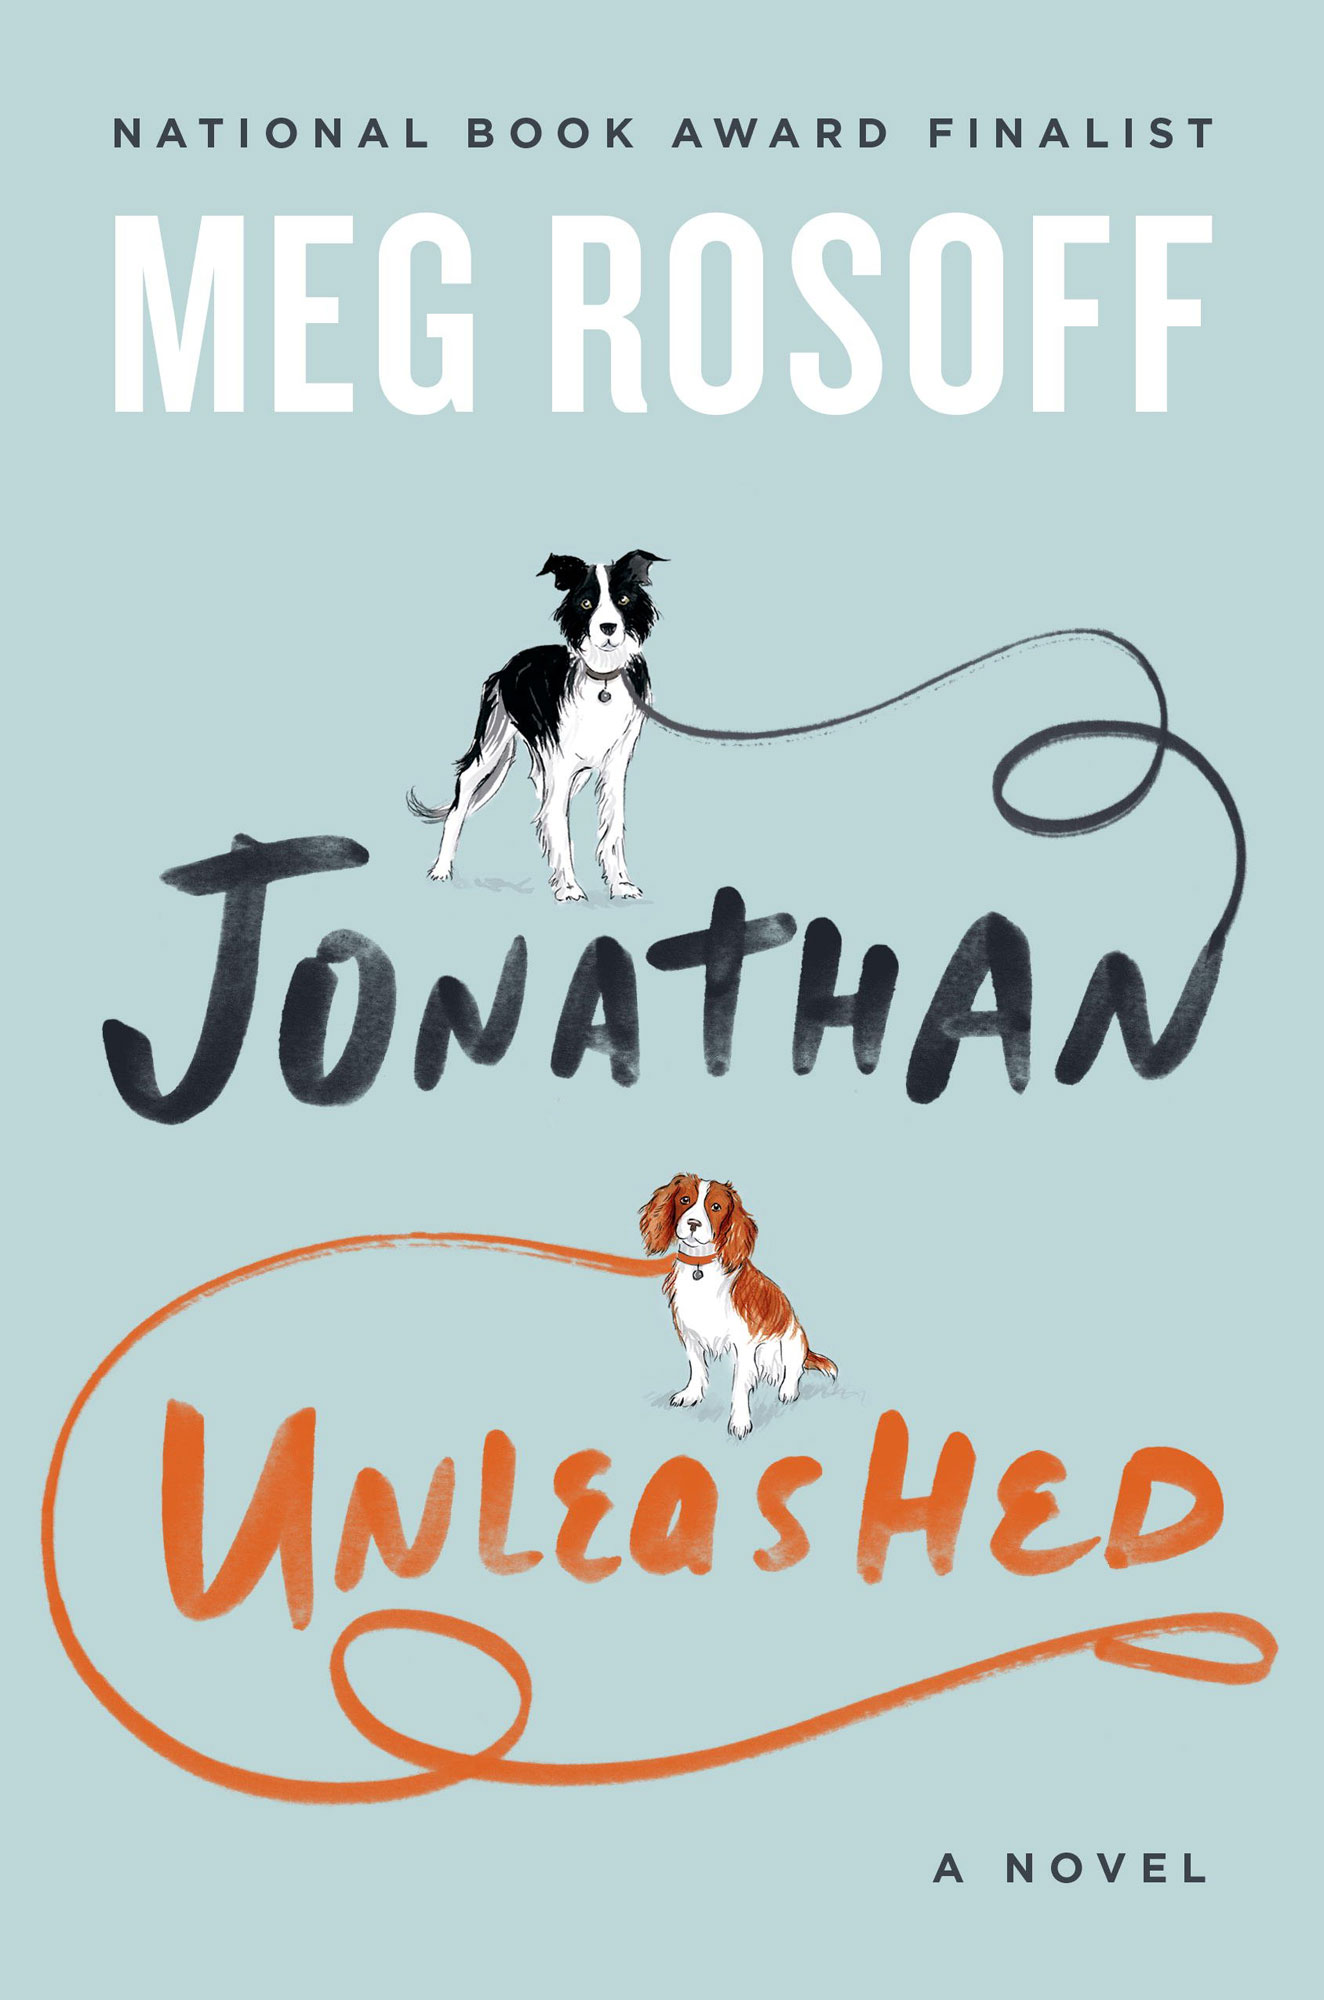 Meg-Rosoff---Jonathan-Unleashed-02.book-award.jpg